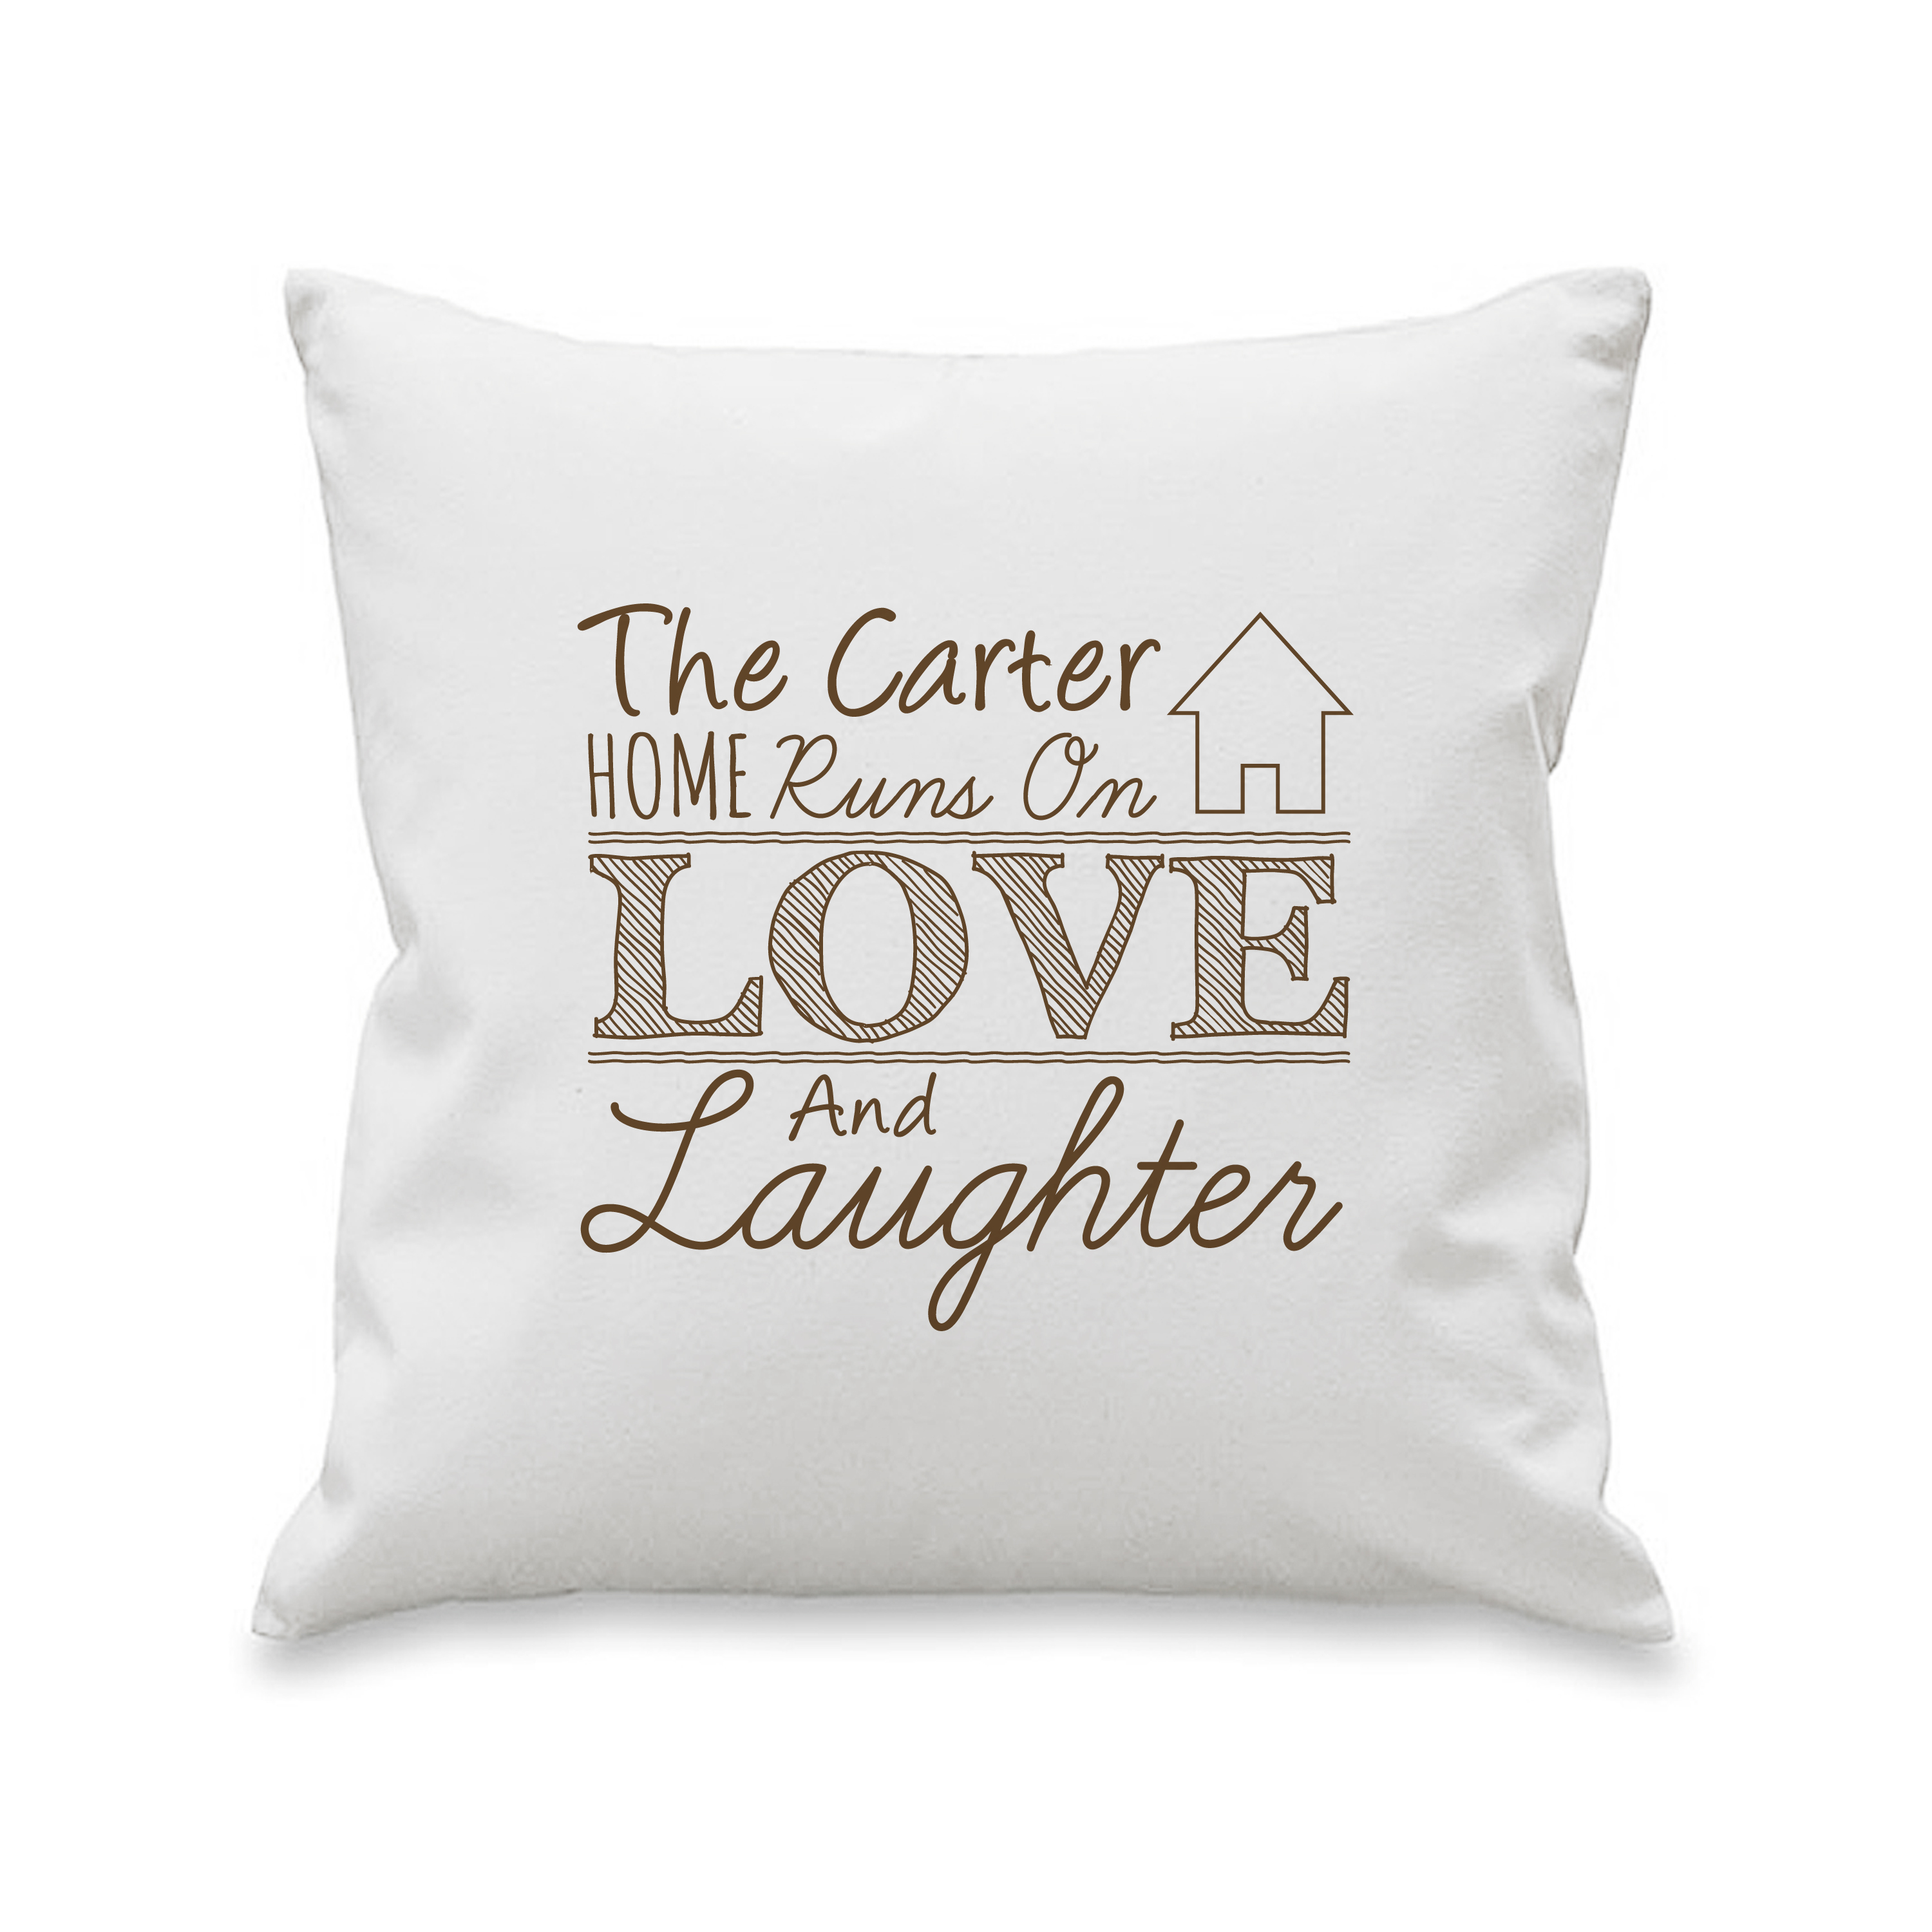 Love & Laughter Cushion Cover